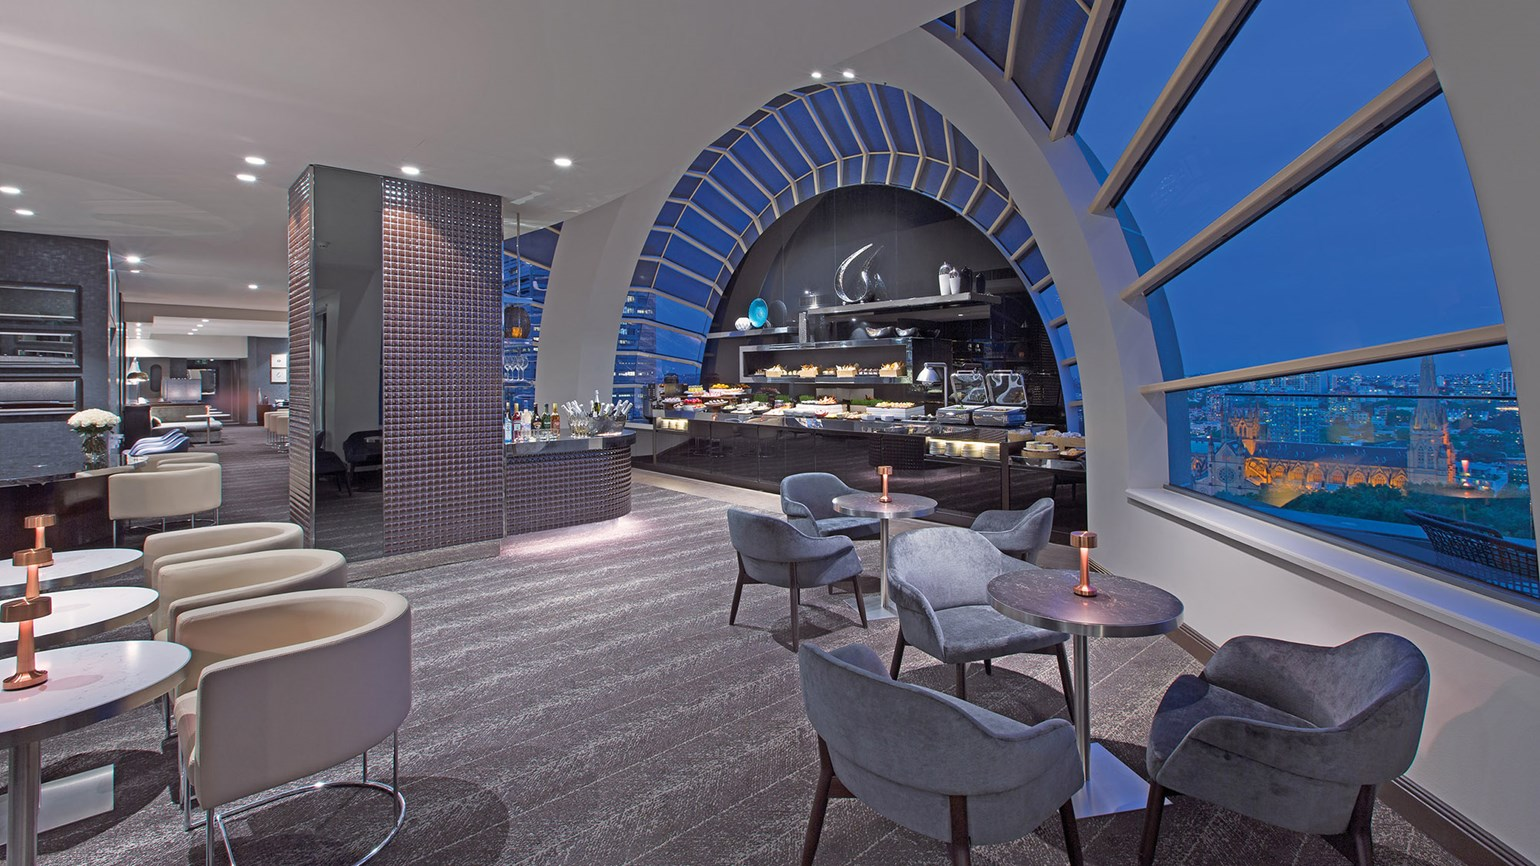 The Sheraton Club Lounge was redone as part of the Sheraton Grand Sydney Hyde Park's $50 million renovation.